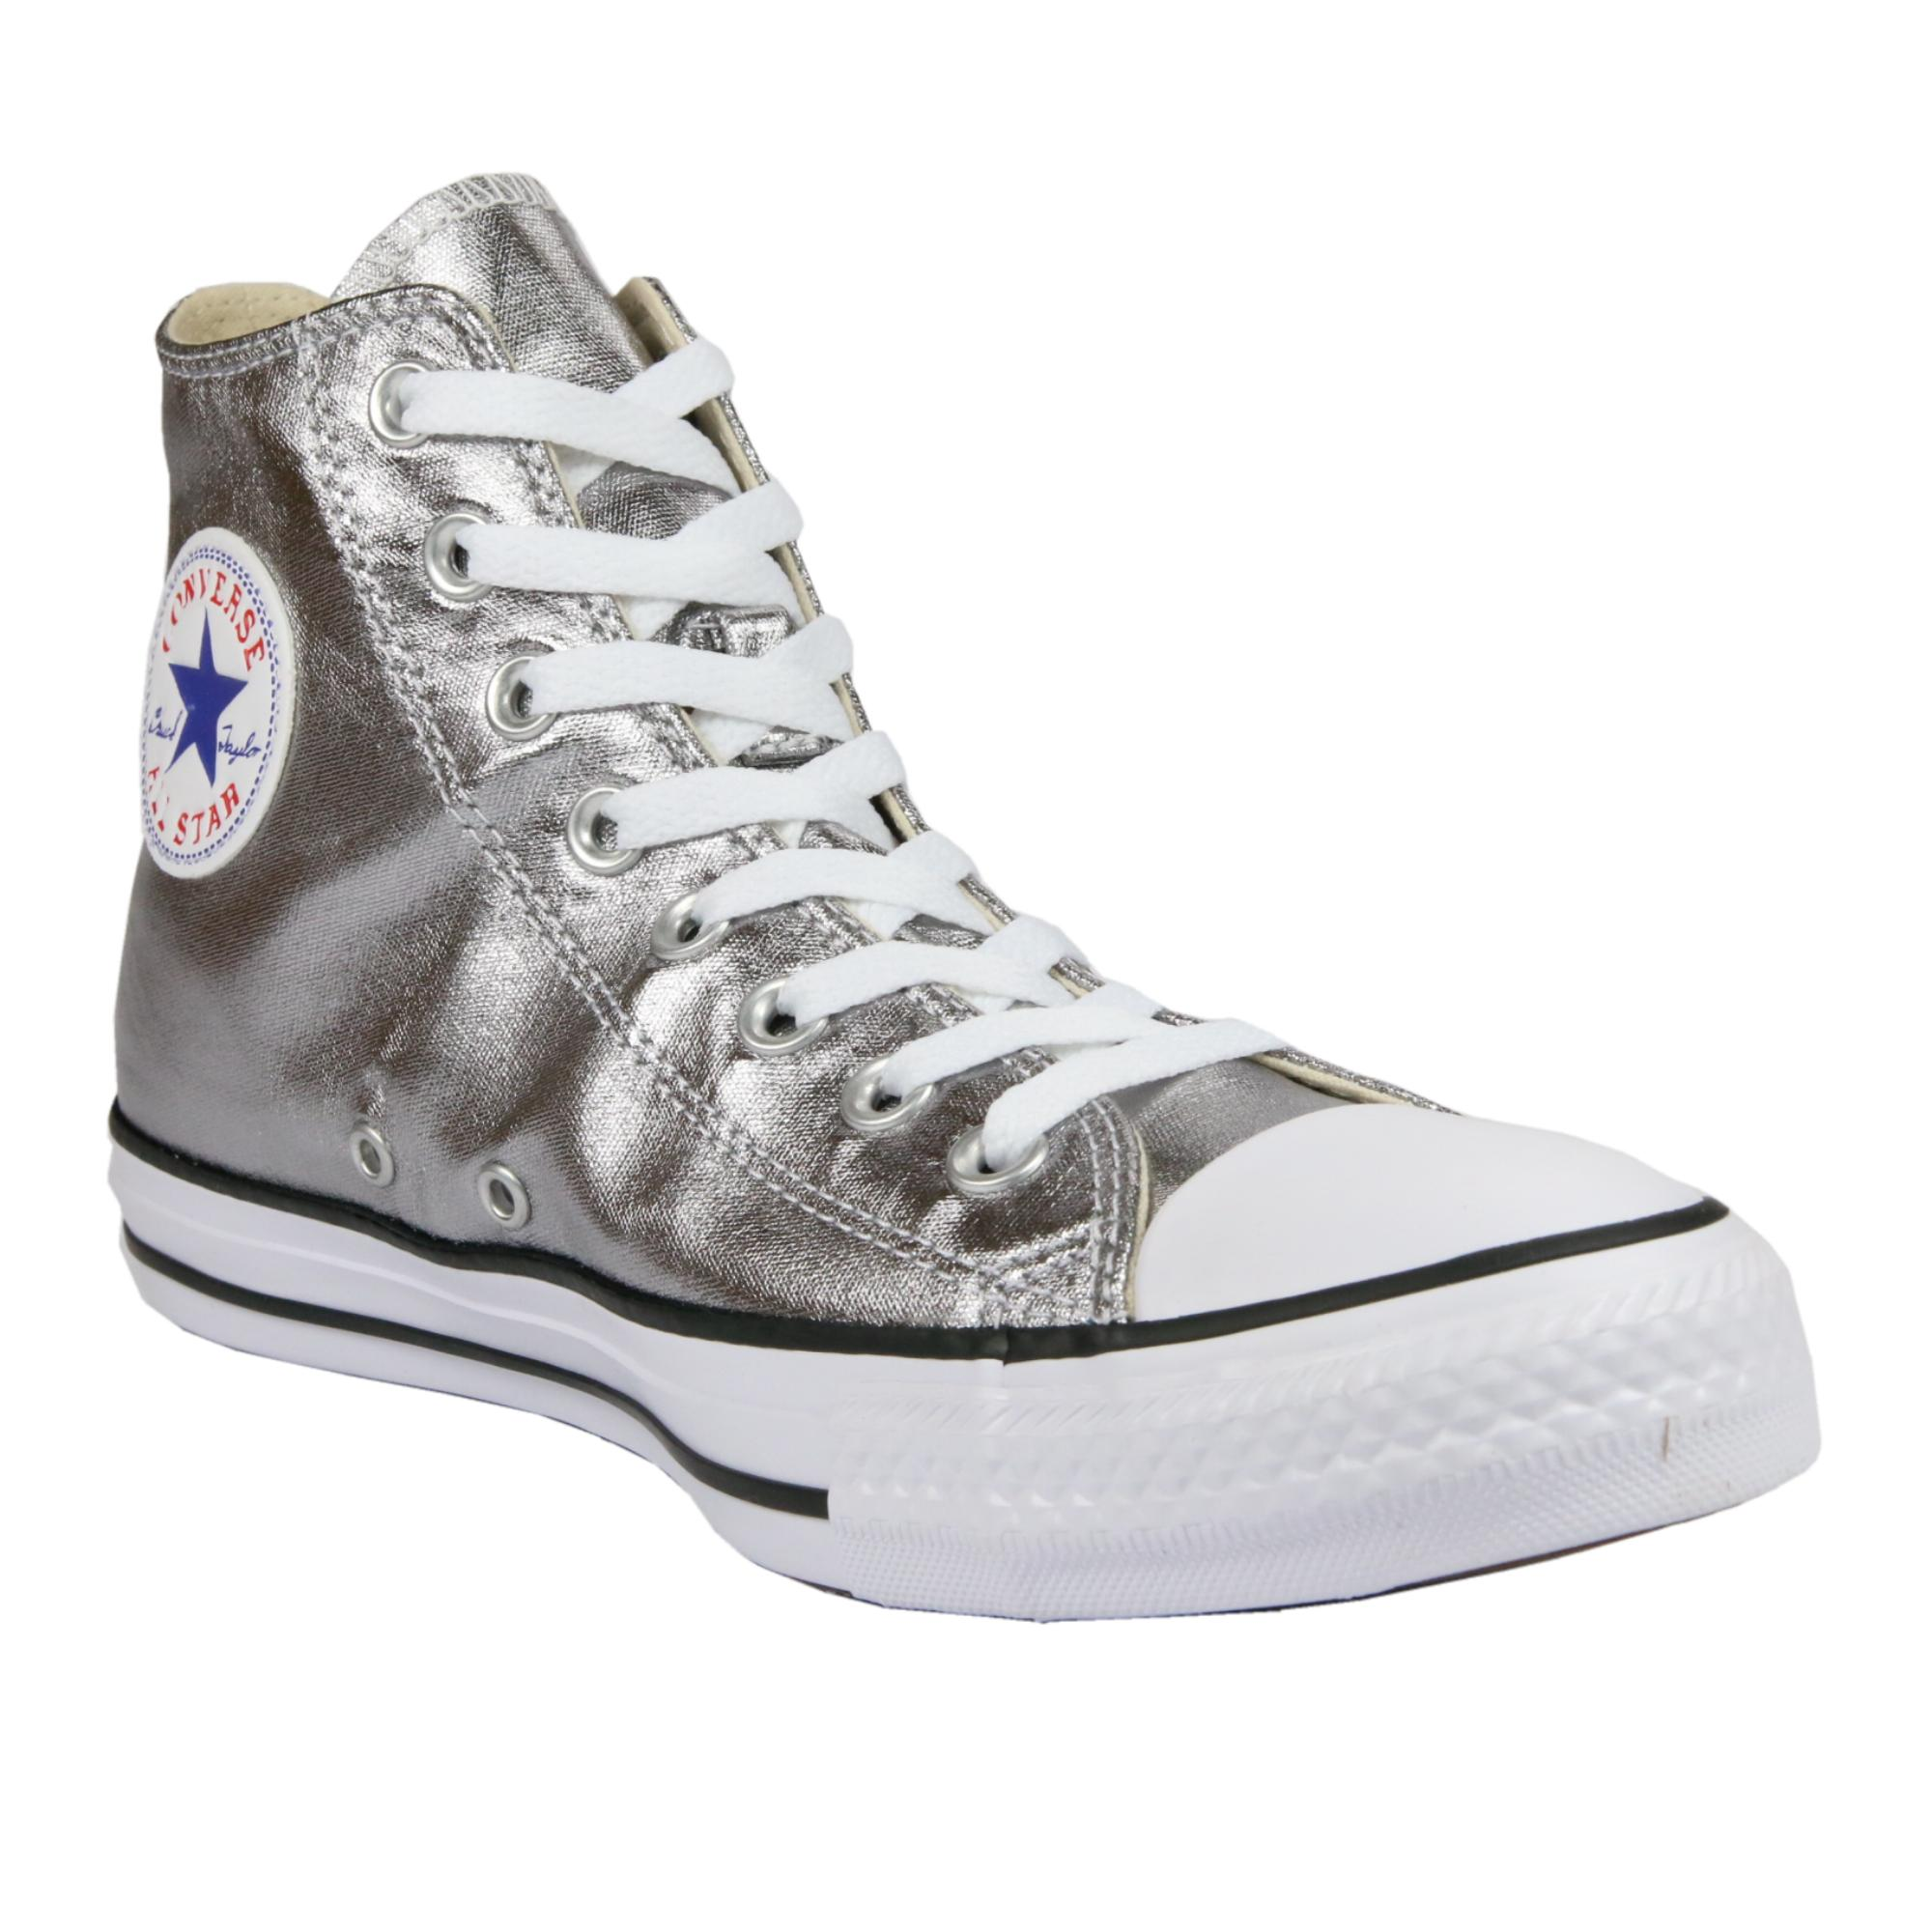 converse chuck taylor all star hi schuhe turnschuhe hightop sneaker damen herren ebay. Black Bedroom Furniture Sets. Home Design Ideas